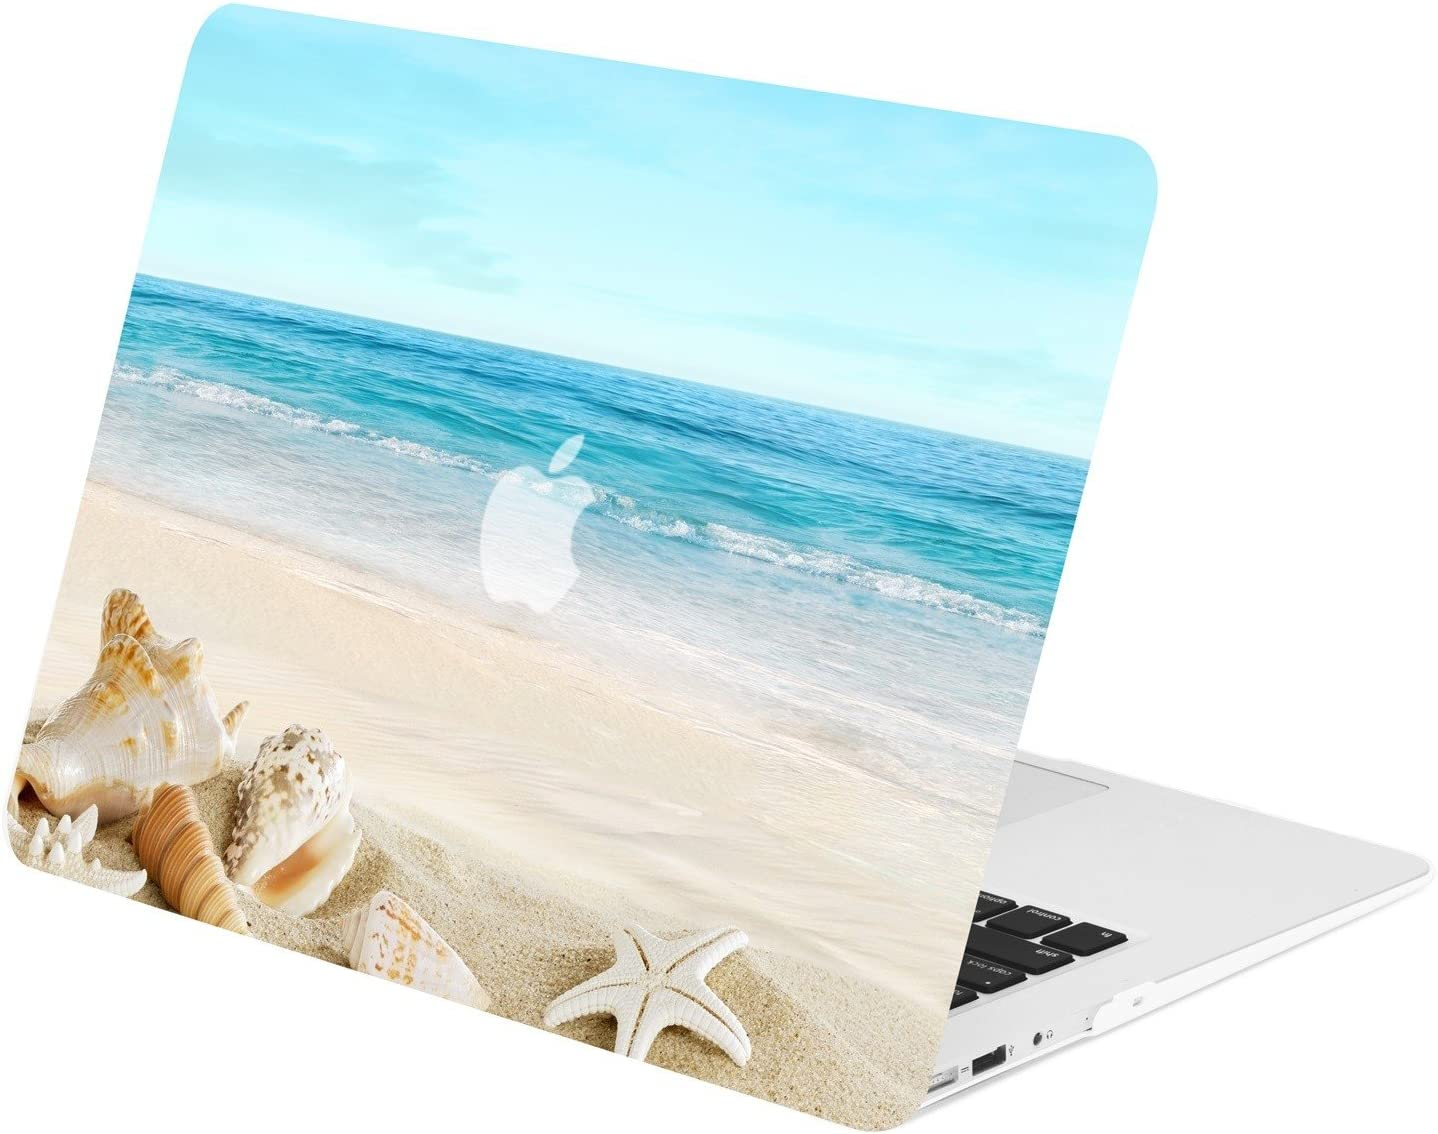 TOP CASE - Retro Series Rubberized Hard Case Compatible Older Generation MacBook Air 13